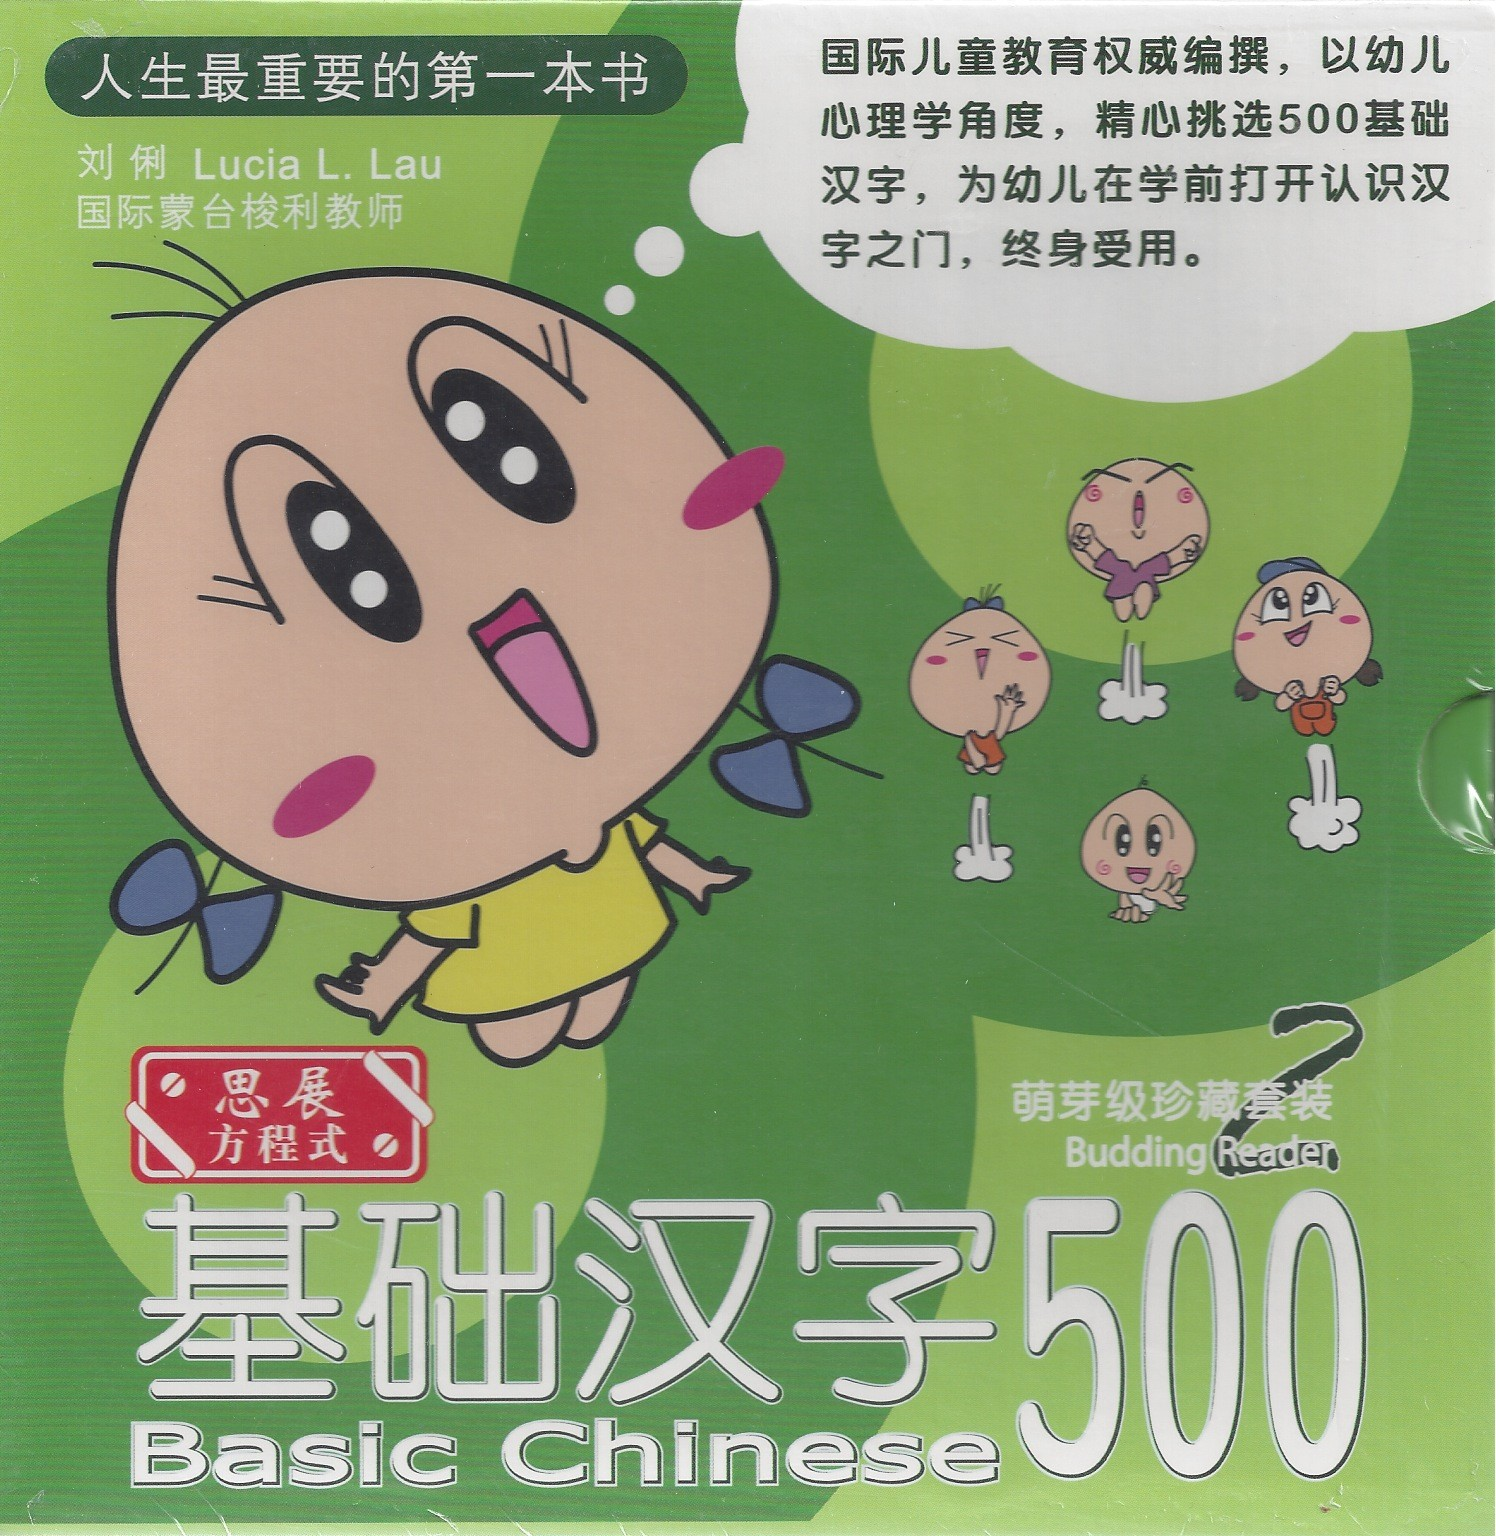 Basic Chinese 500 - Budding Reader Box Set